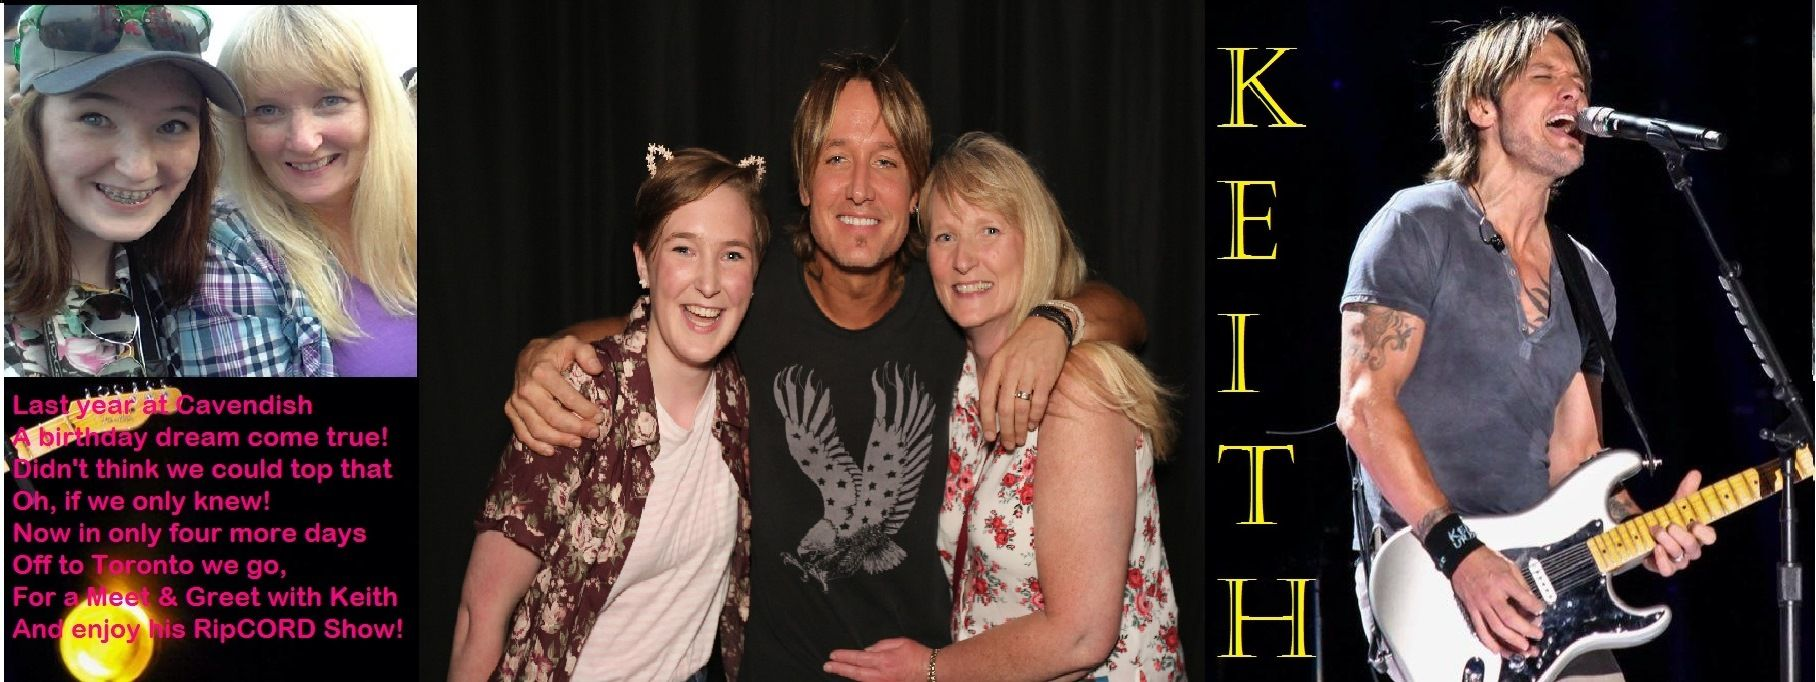 Winning a meet greet with keithurban dreamcometrue keith urban winning a meet greet m4hsunfo